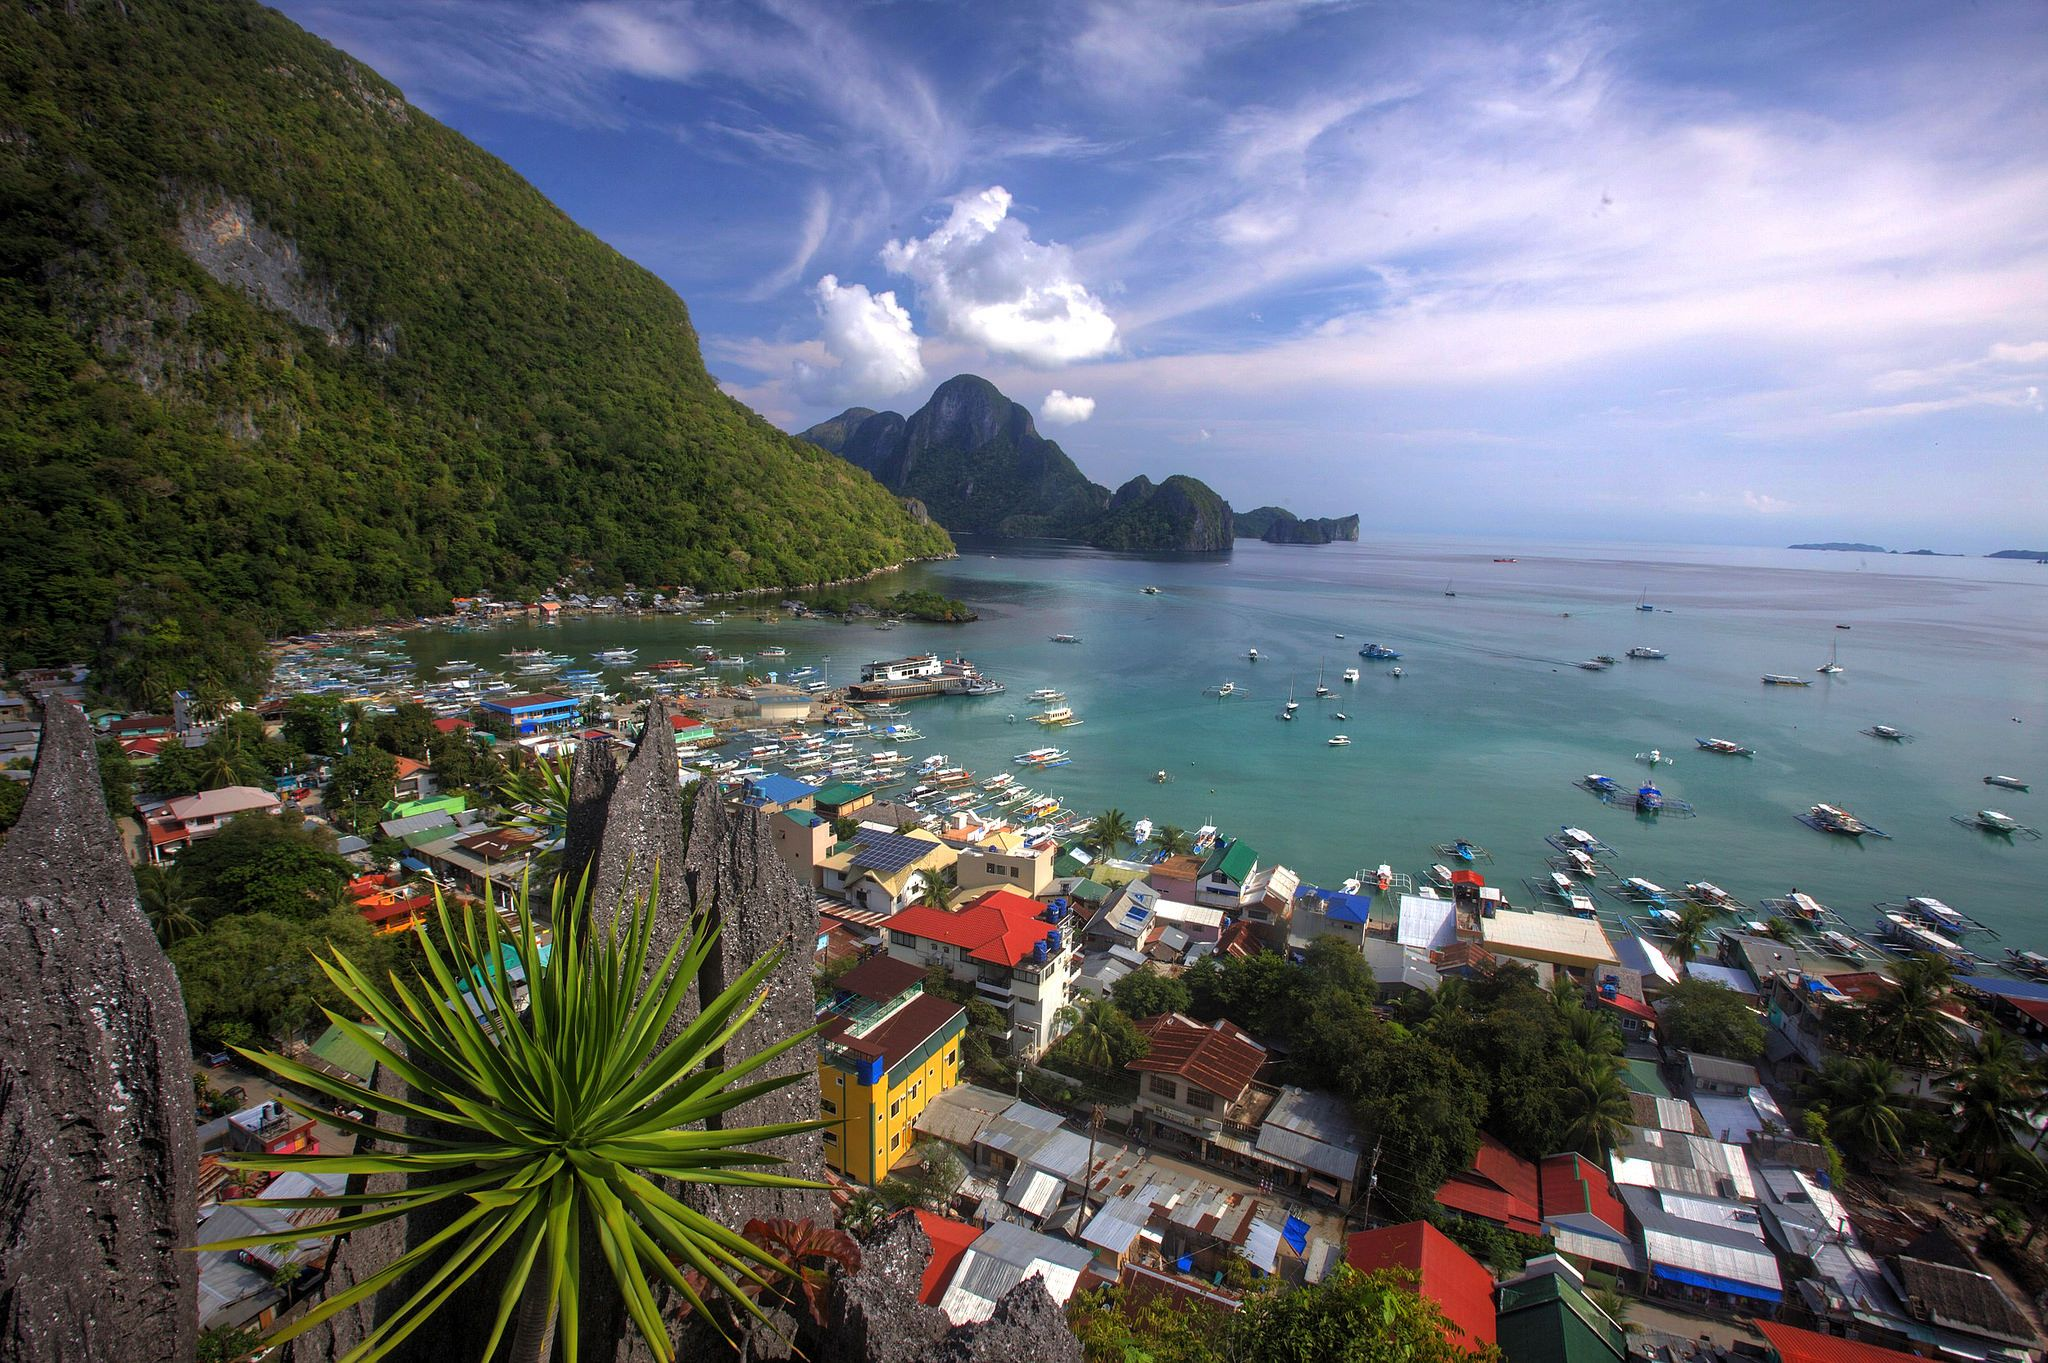 https://flic.kr/p/HxLFGq | El Nido from Above | The town of El Nido, Palawan, Philippines, seen from above, from the end point of the Taraw Cliff Walk. What a pretty place!  Check out my blog at  pacificklaus.com/